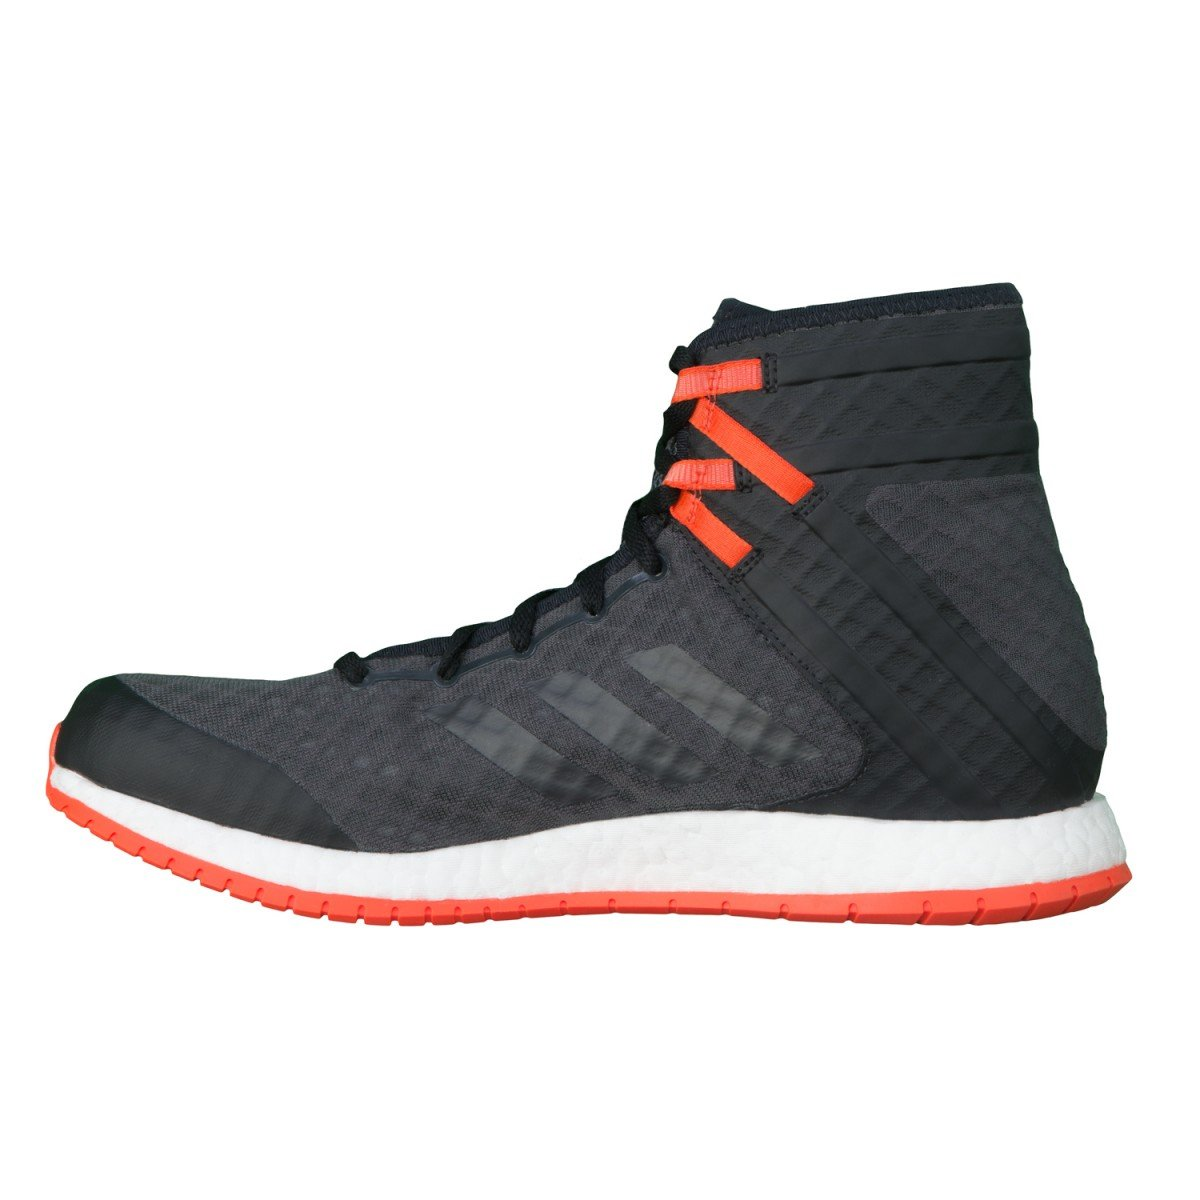 huge discount 30aa4 f2561 adidas Speedex 16.1 Boost Boxing Shoes - SS18  Amazon.co.uk  Shoes   Bags